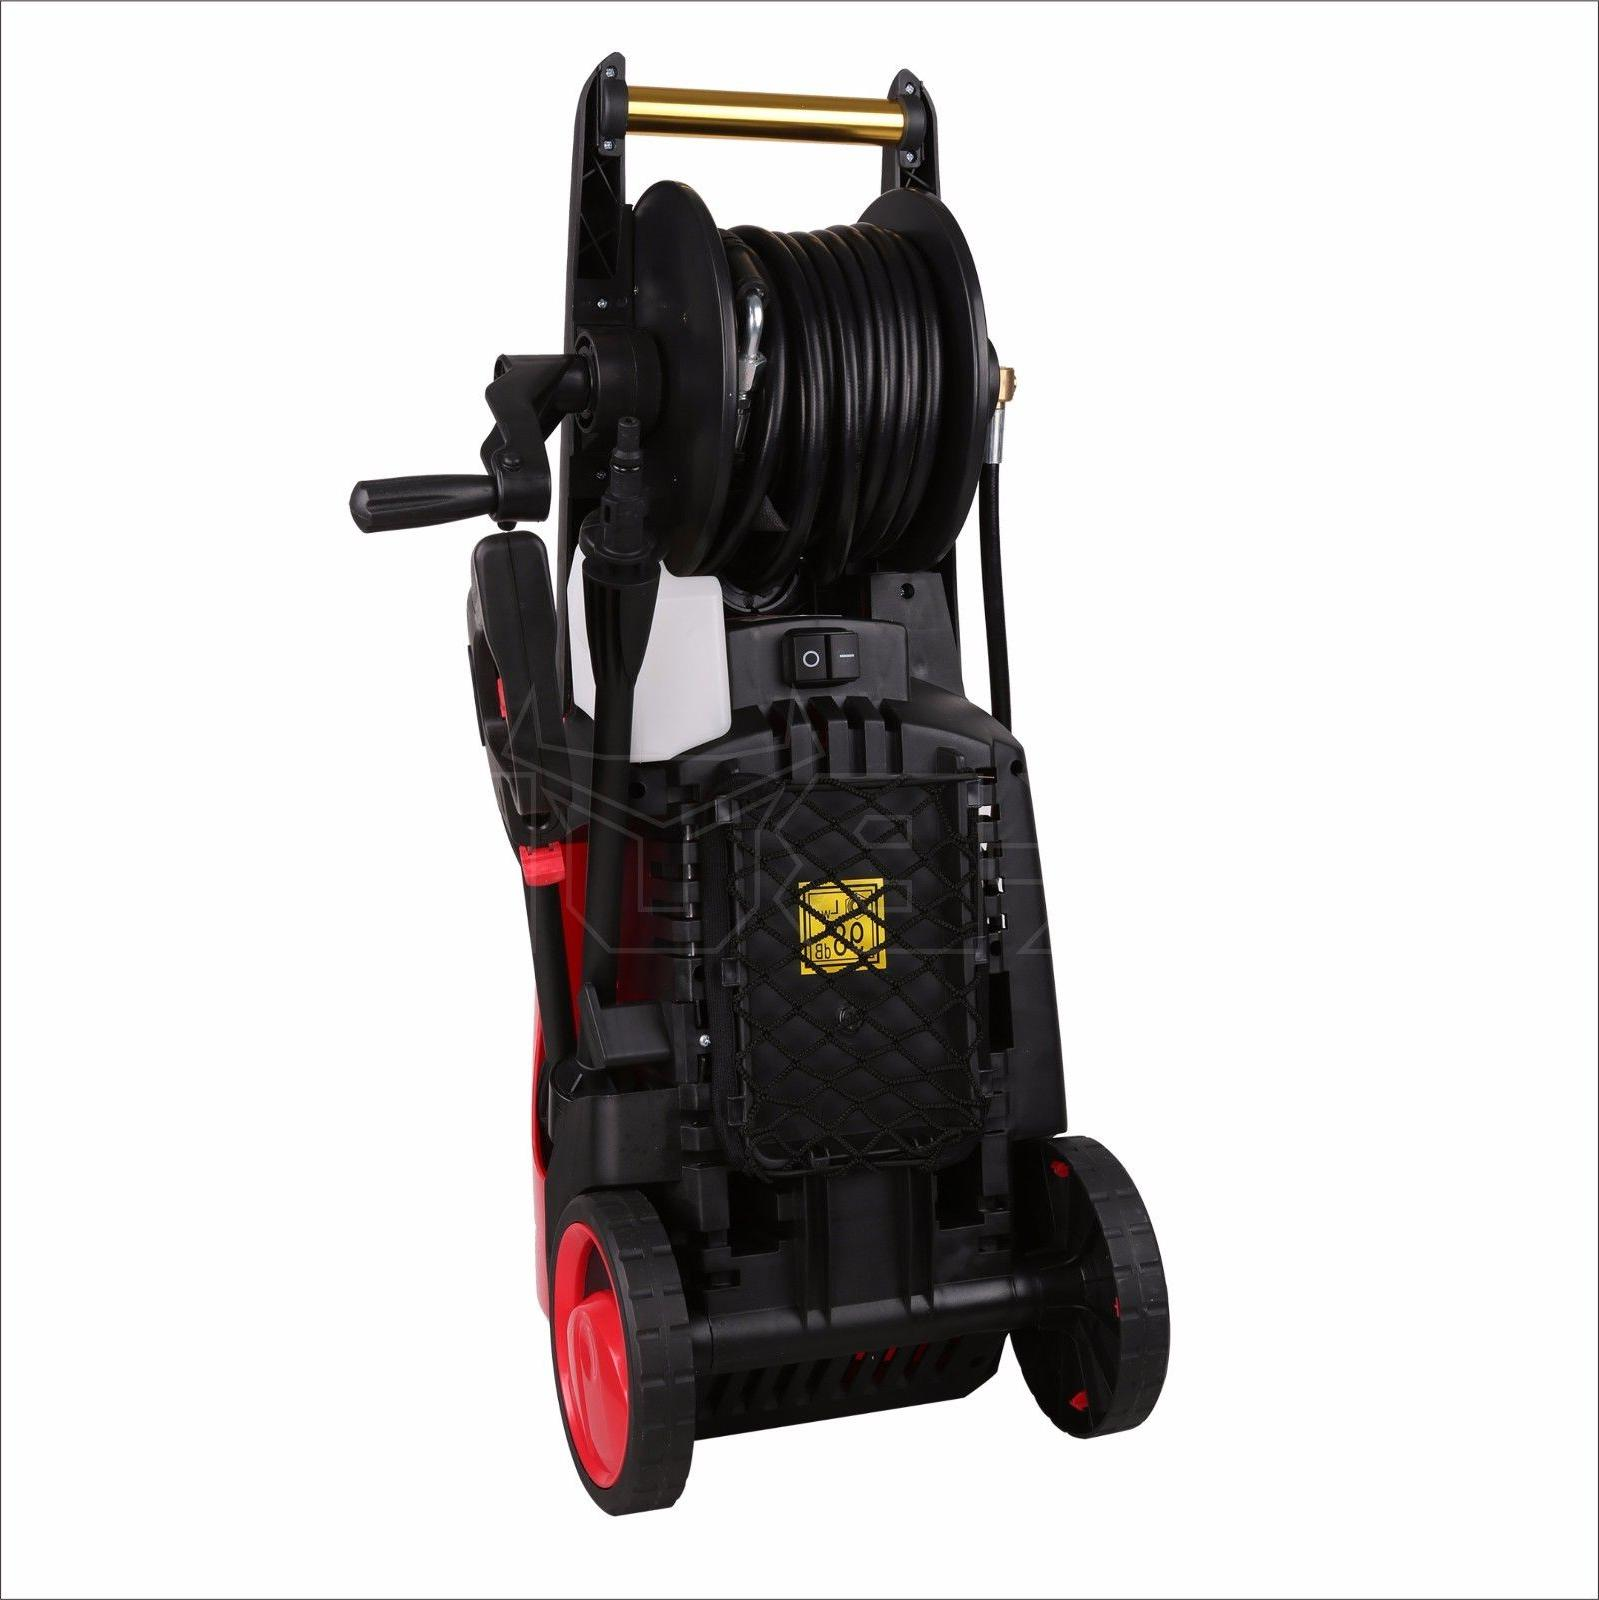 X-BULL Electric Washer Pressure Washer 3000 2000W 1.6 Washer